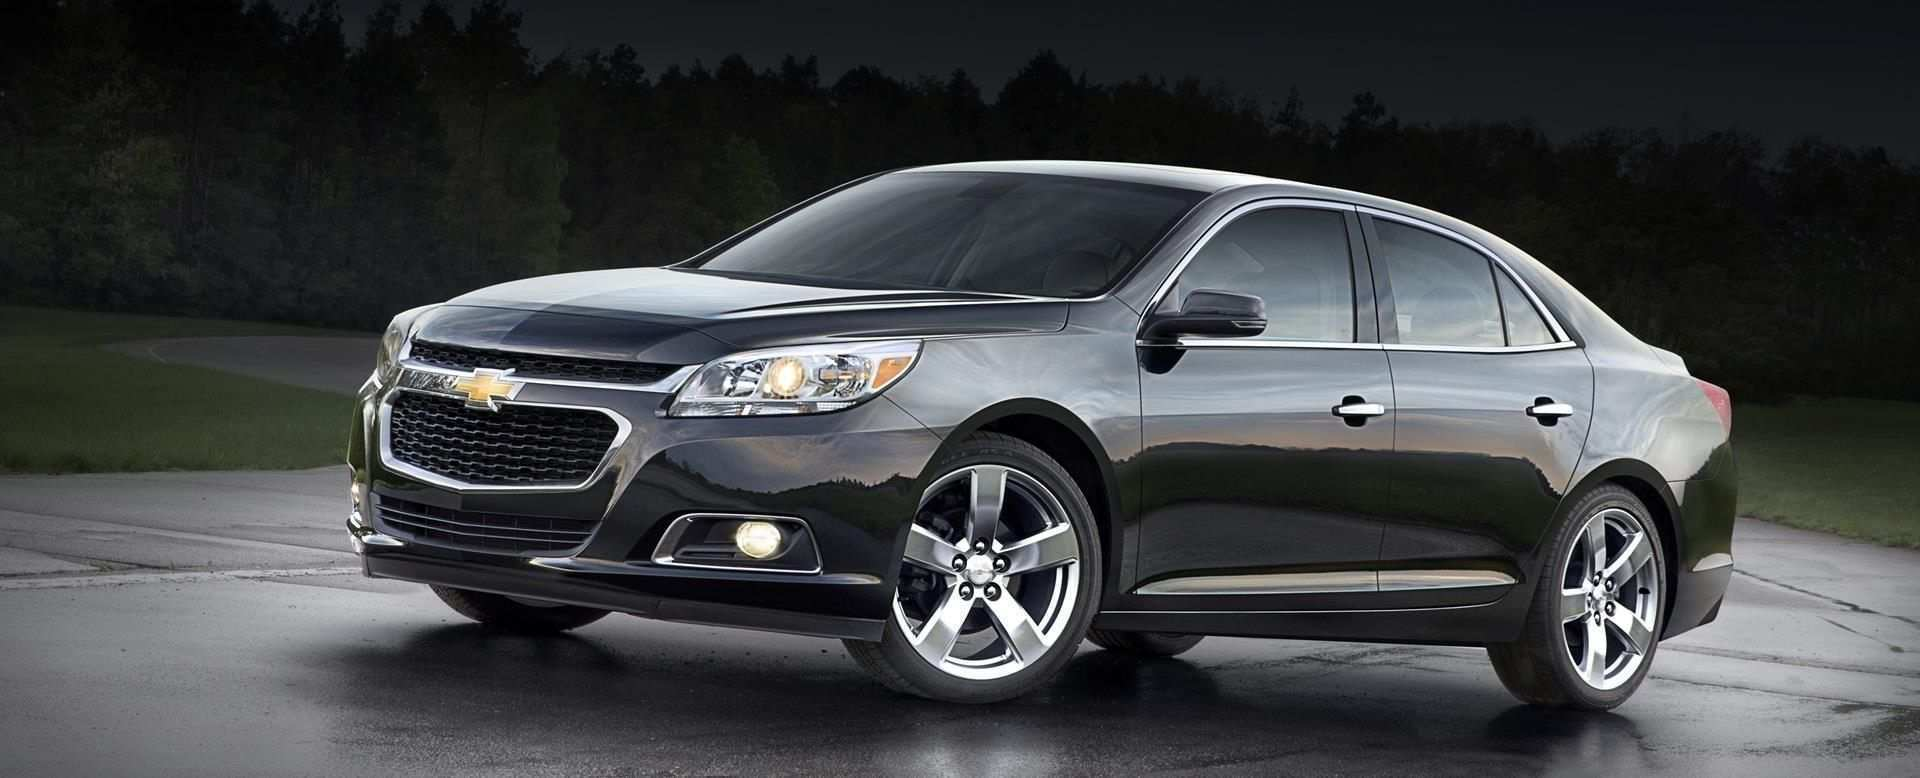 21 The Best 2020 Chevy Malibu Pricing